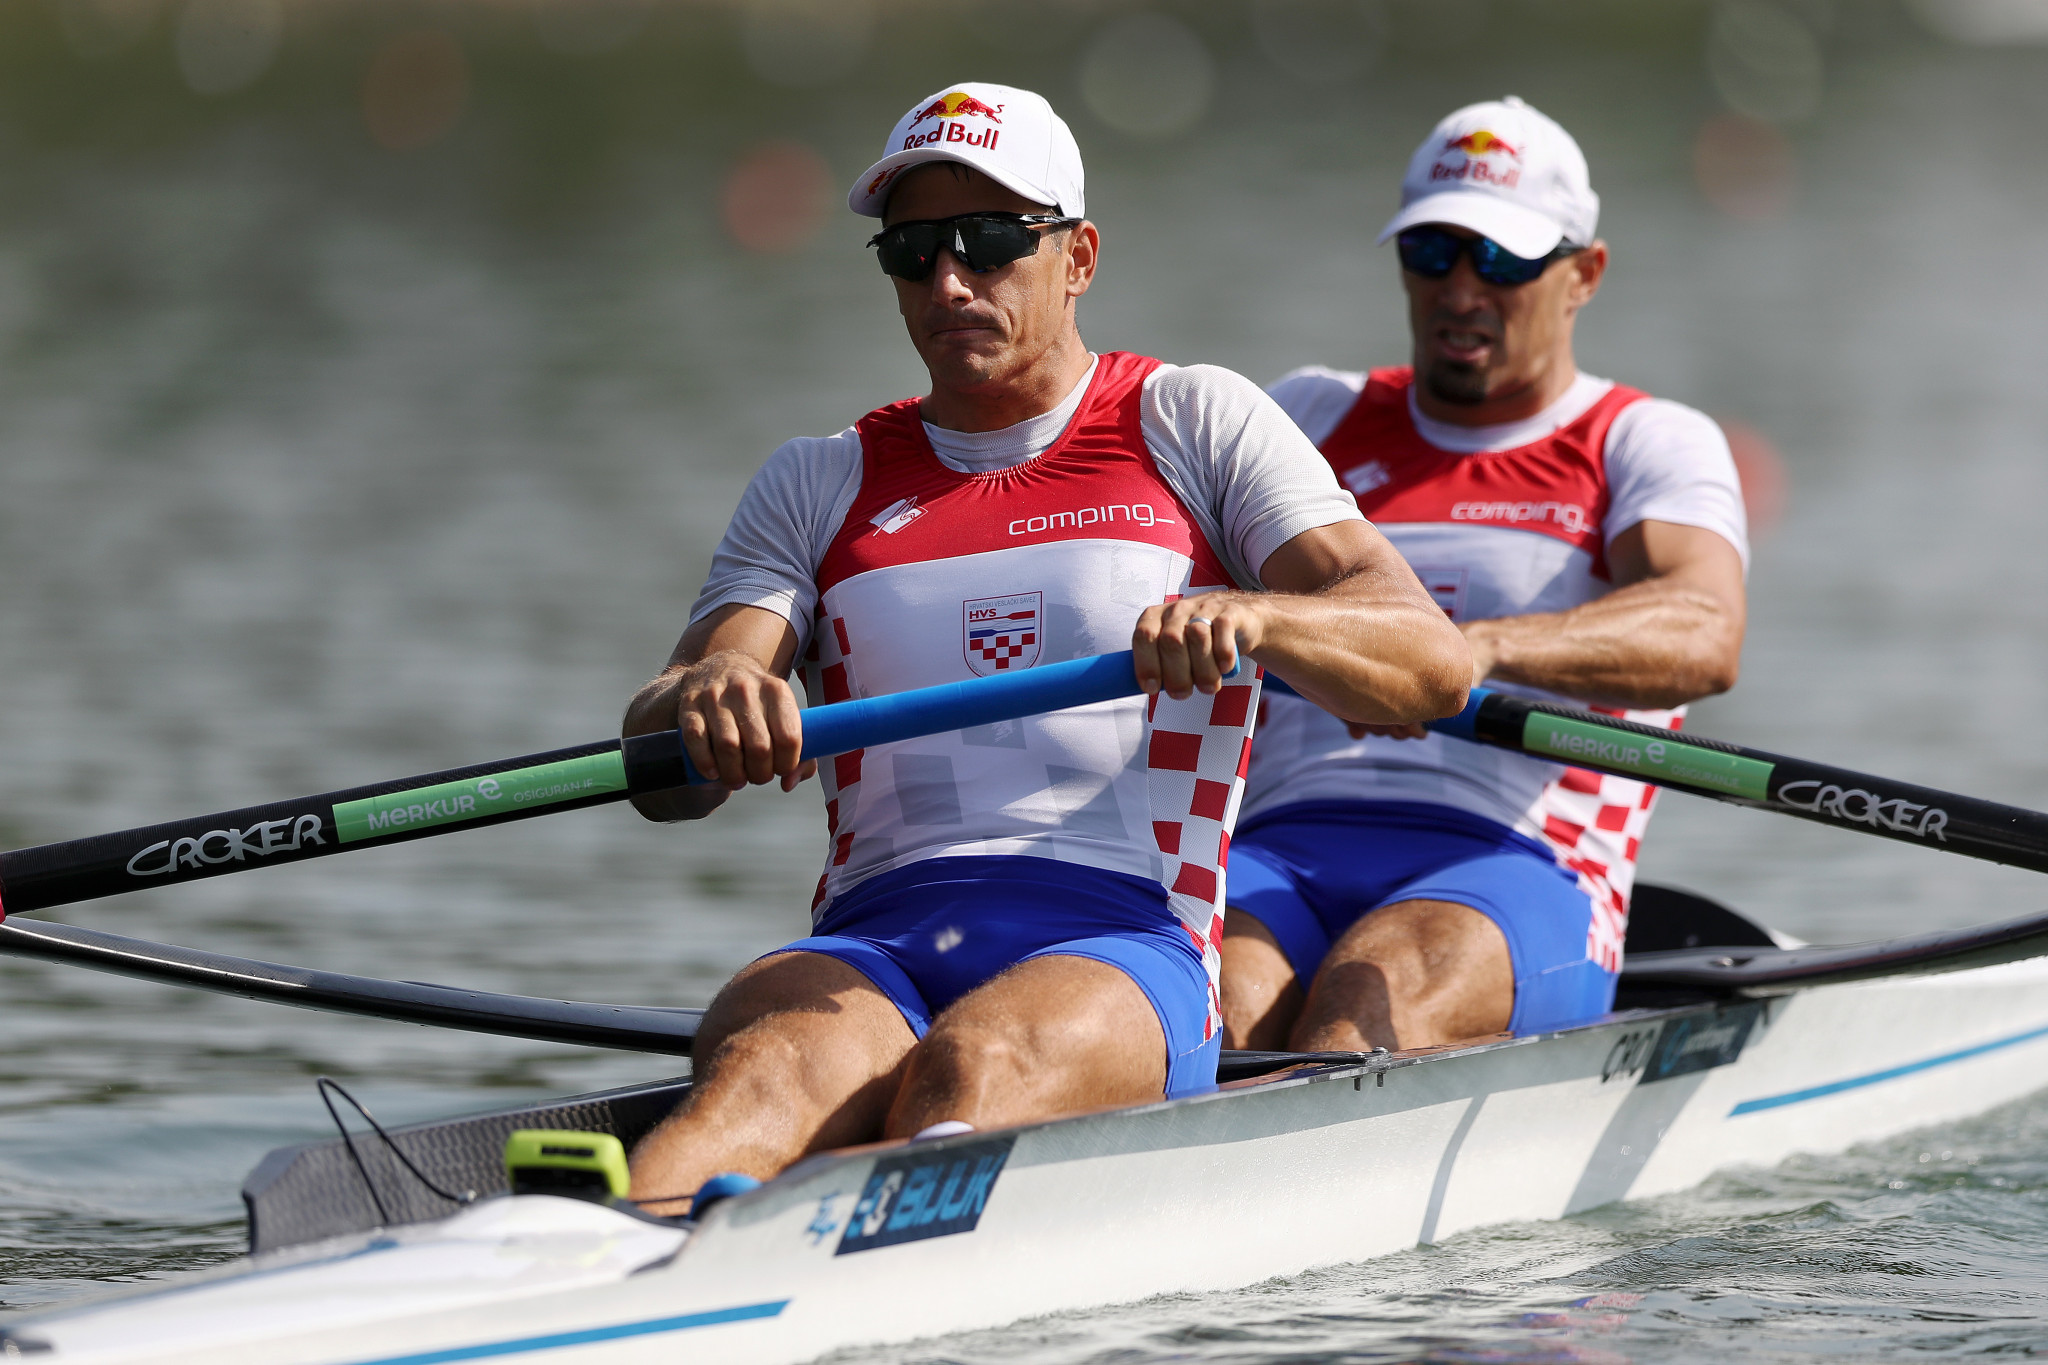 Sinković brothers on track to defend European Rowing Championships title